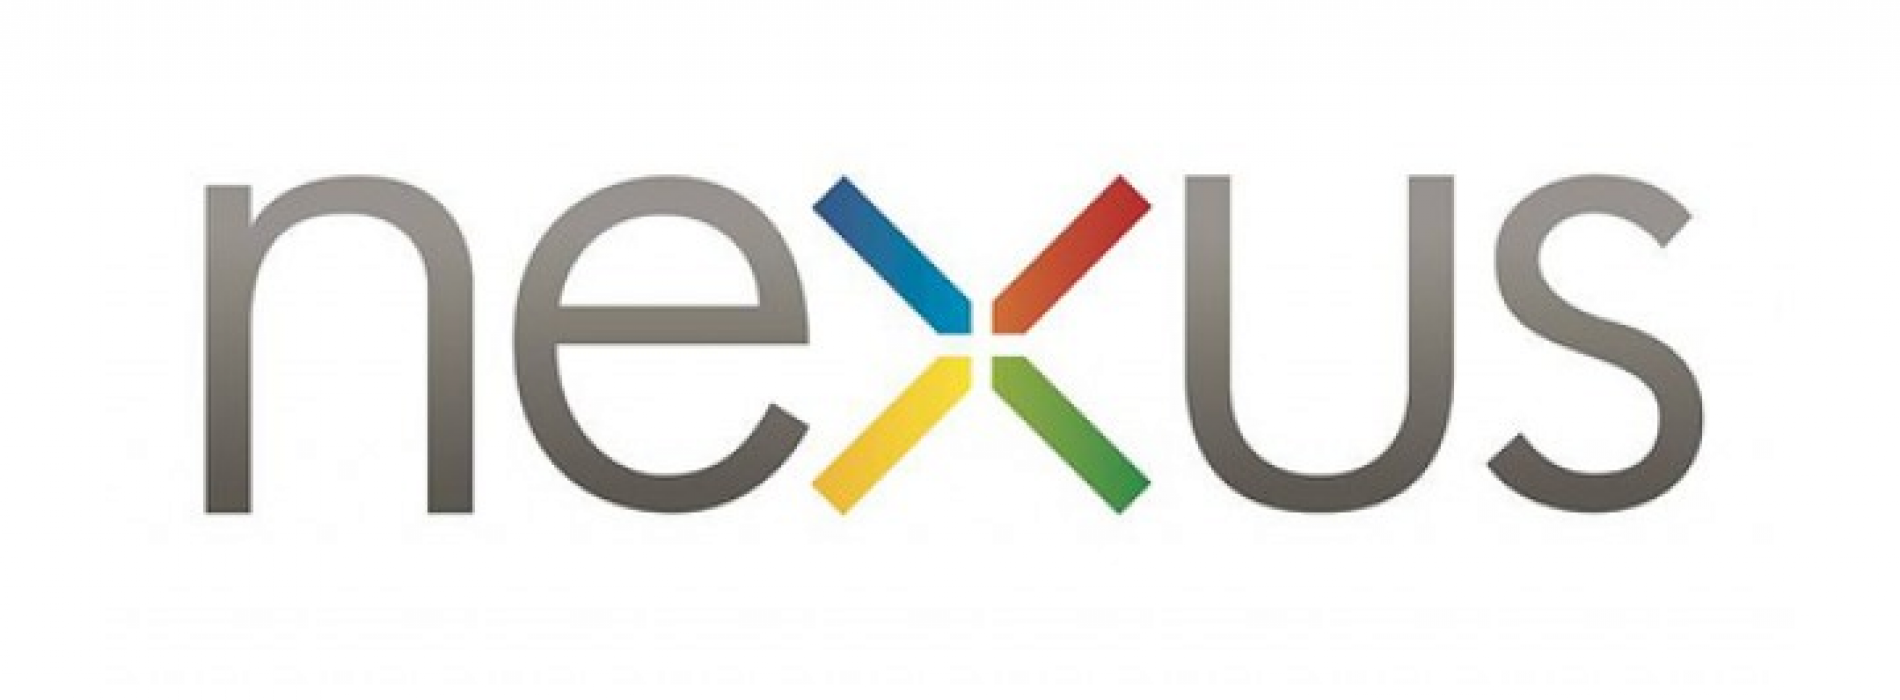 Google's $99 Nexus tablet still expected this year